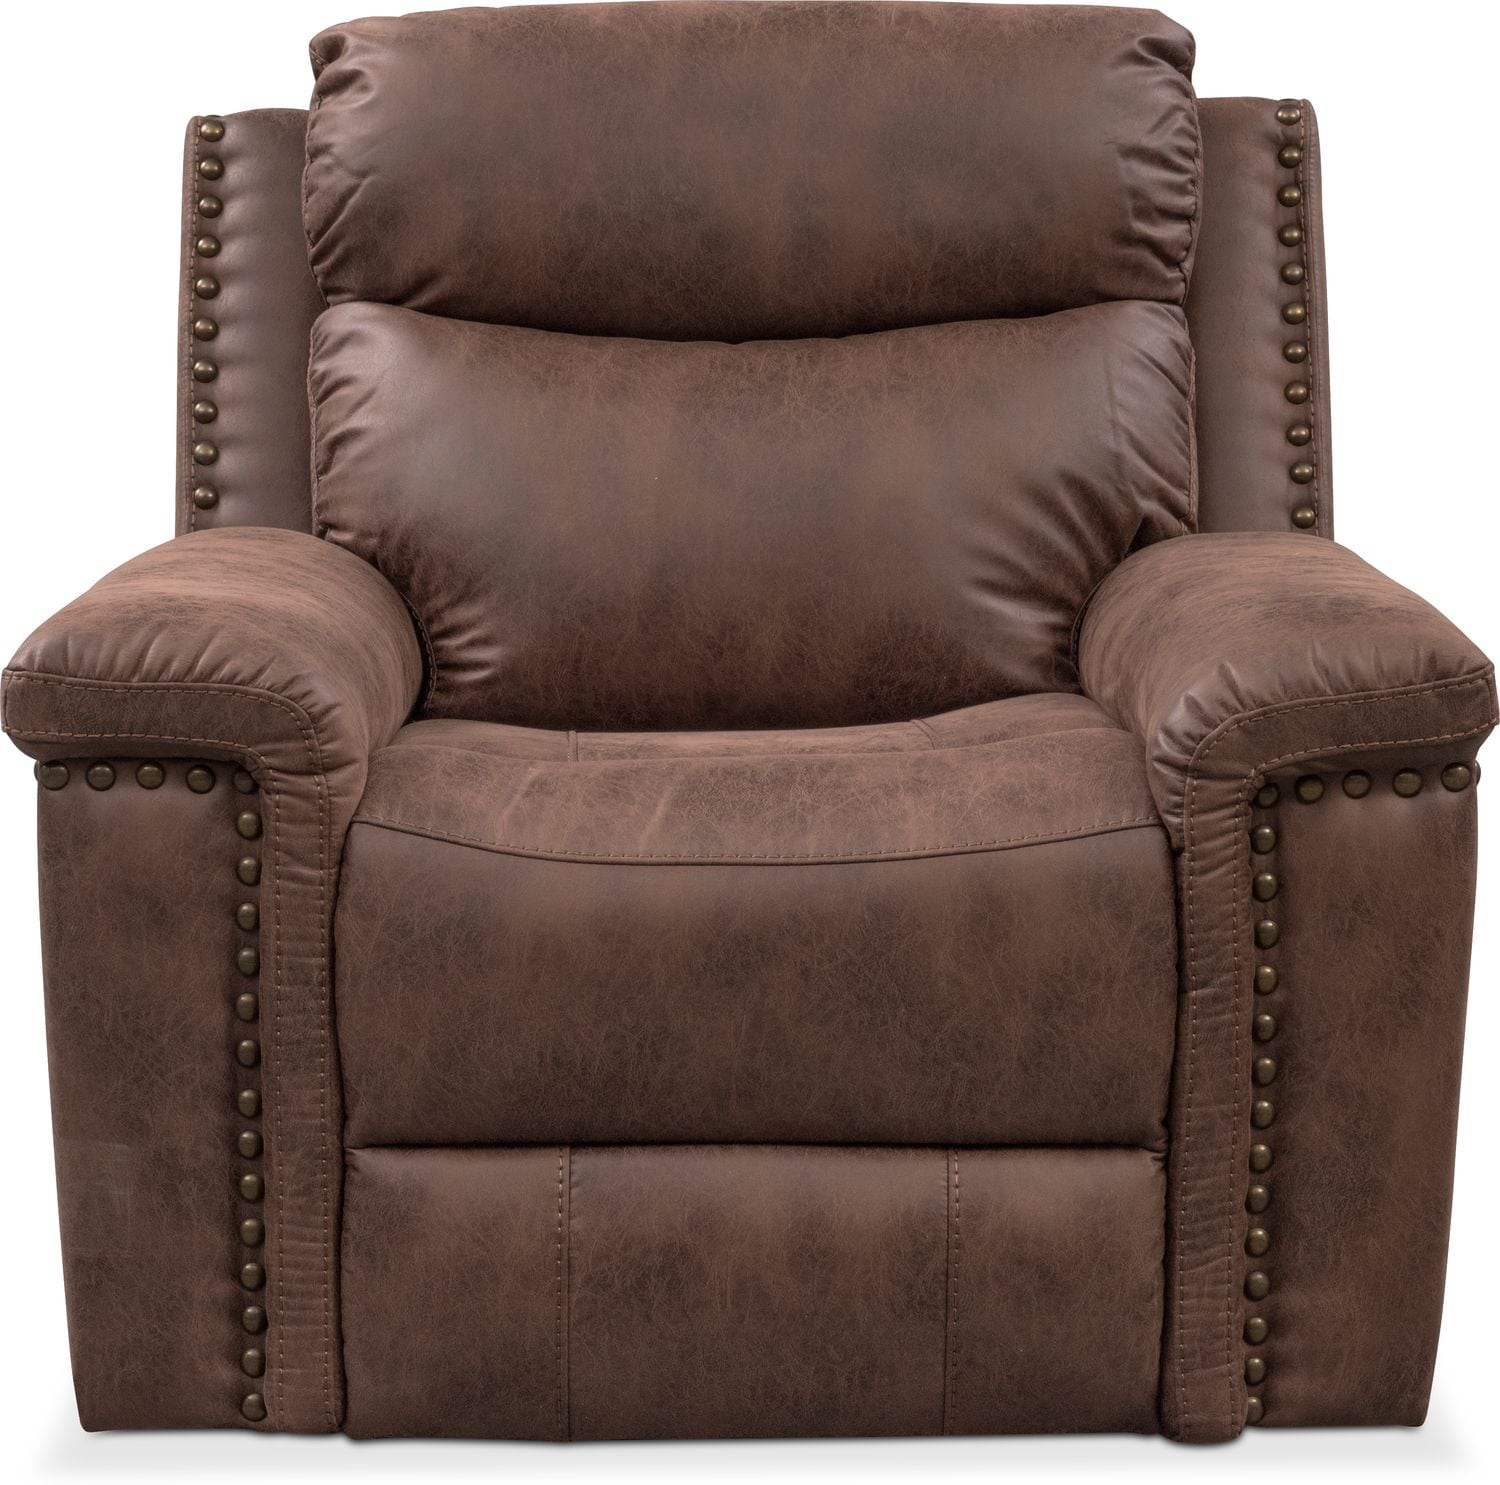 sectional city sale with sears lazyboy recliner your sofa favorite living value outlet chairs chair furniture room rocking reclining enjoy cozy couches for rocker cheap lift recliners secti